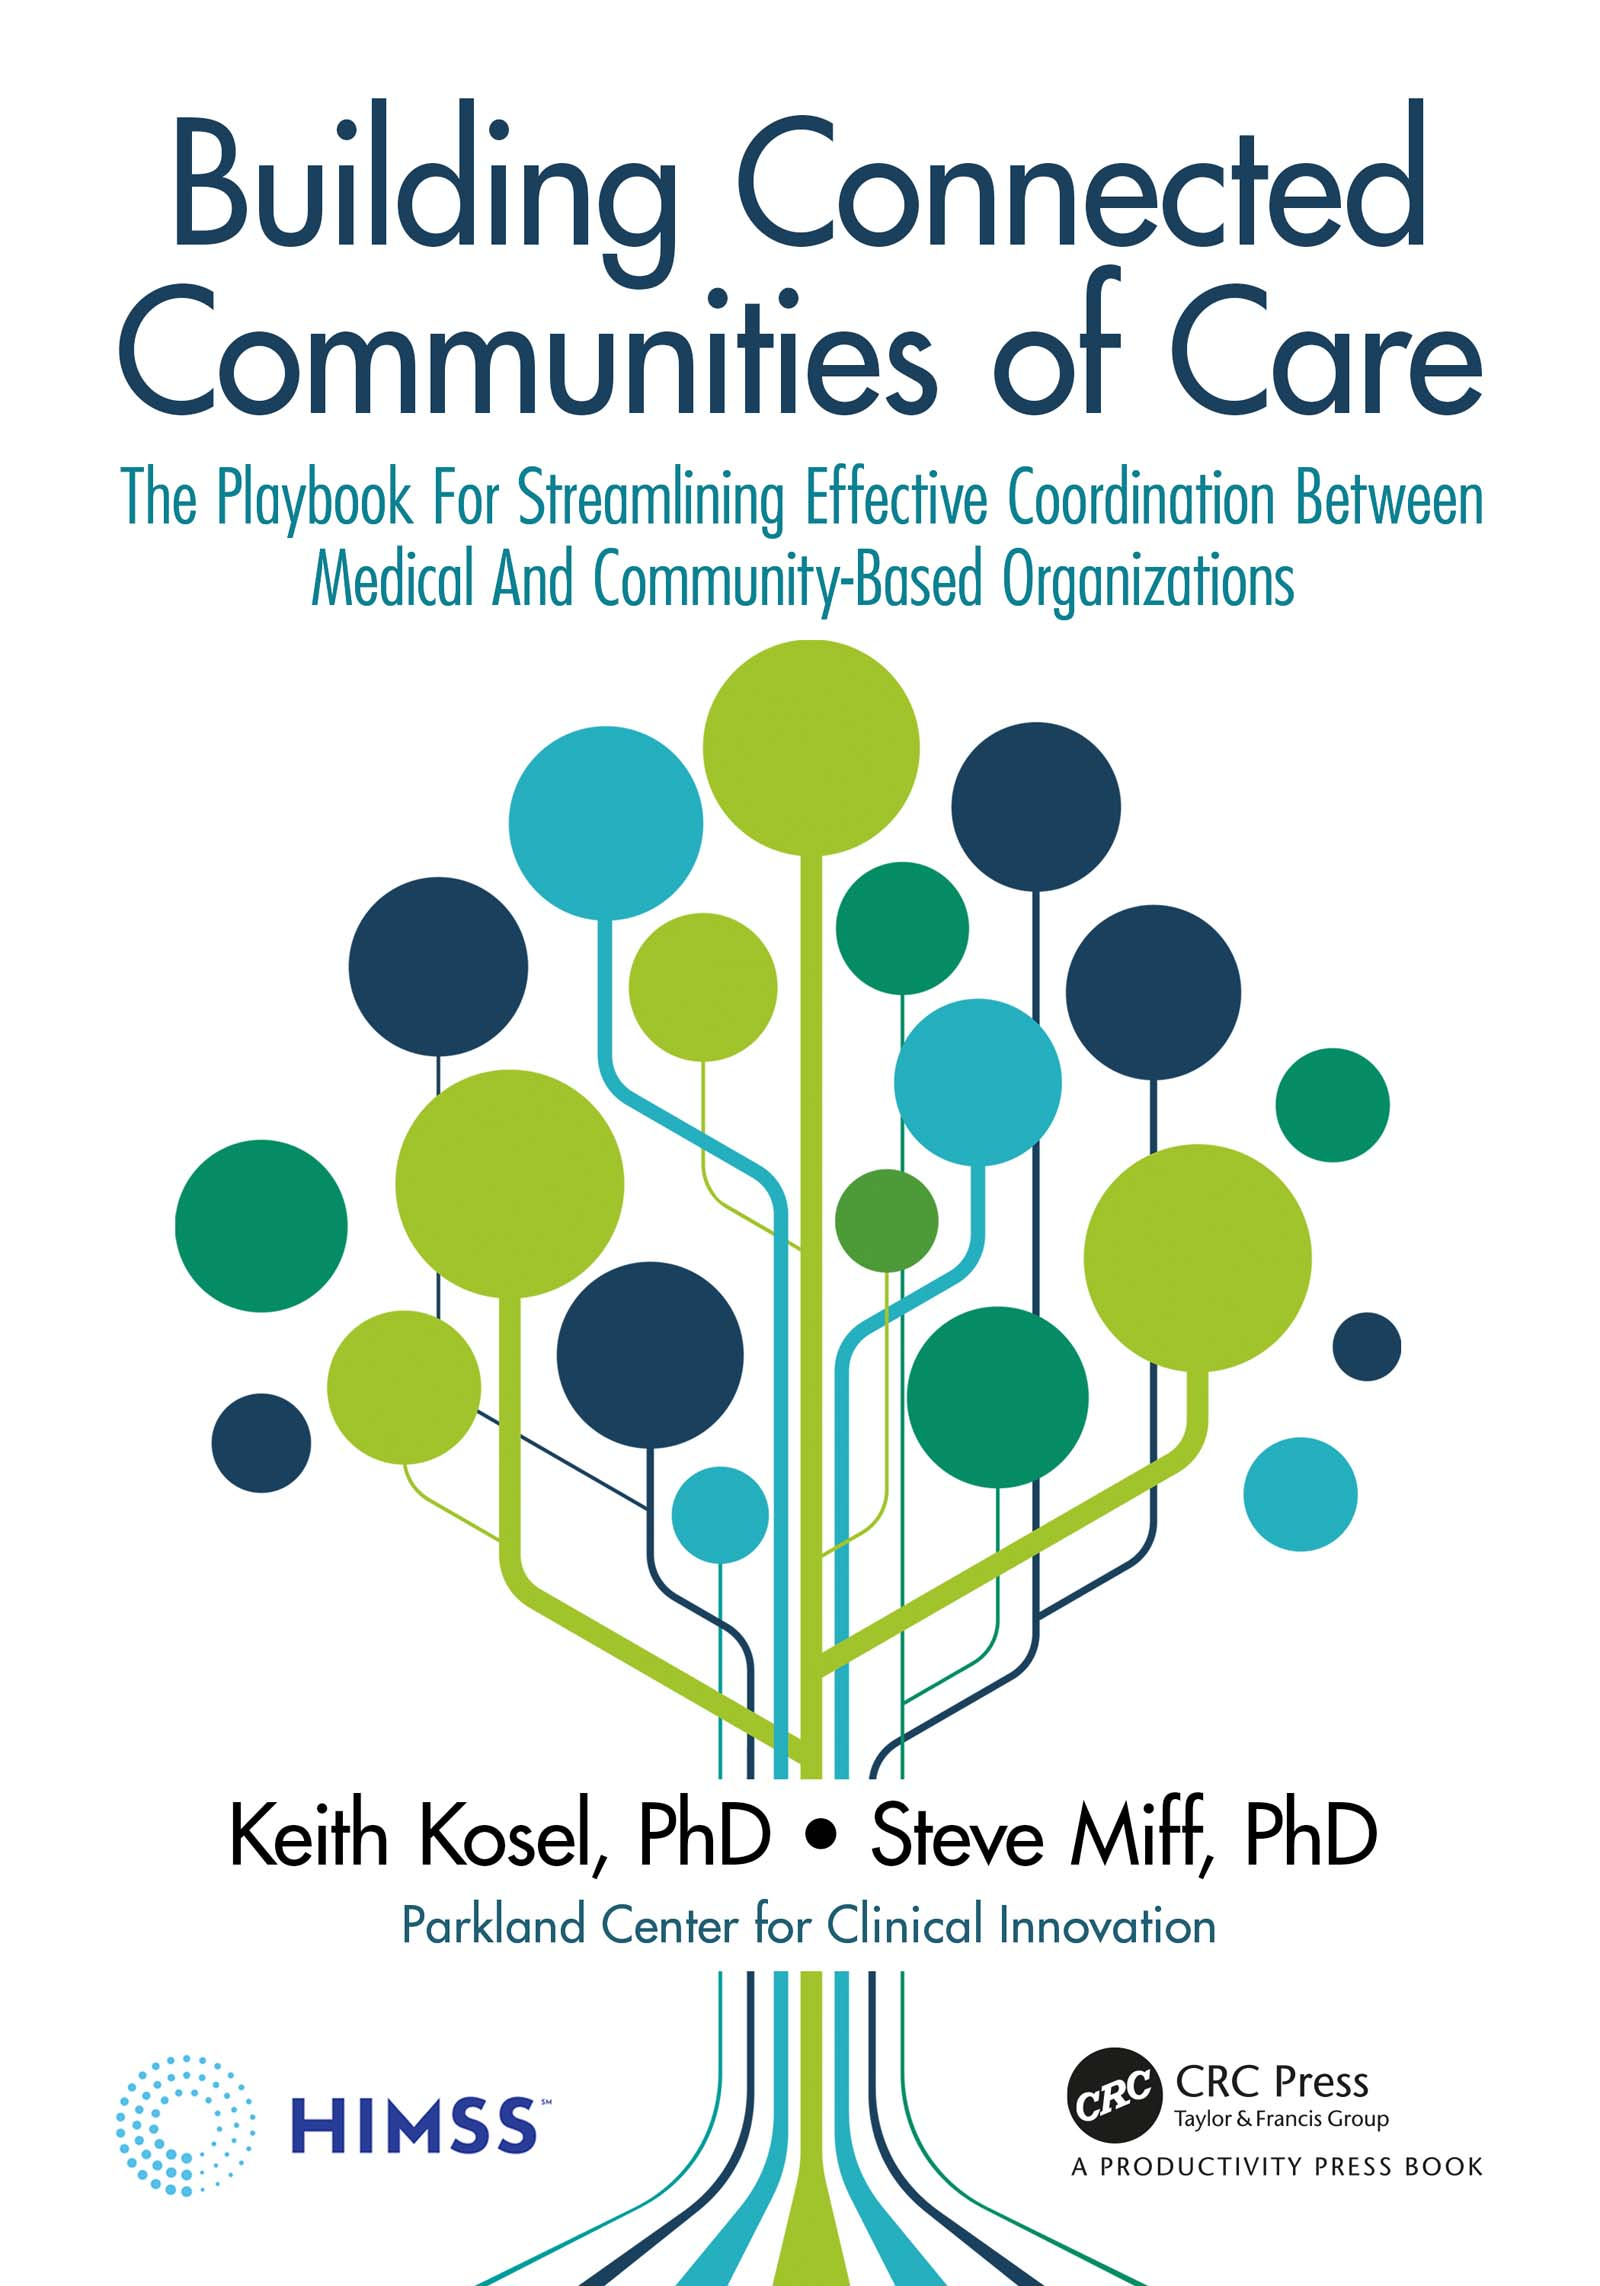 Building Connected Communities of Care: The Playbook For Streamlining Effective Coordination Between Medical And Community-Based Organizations book cover